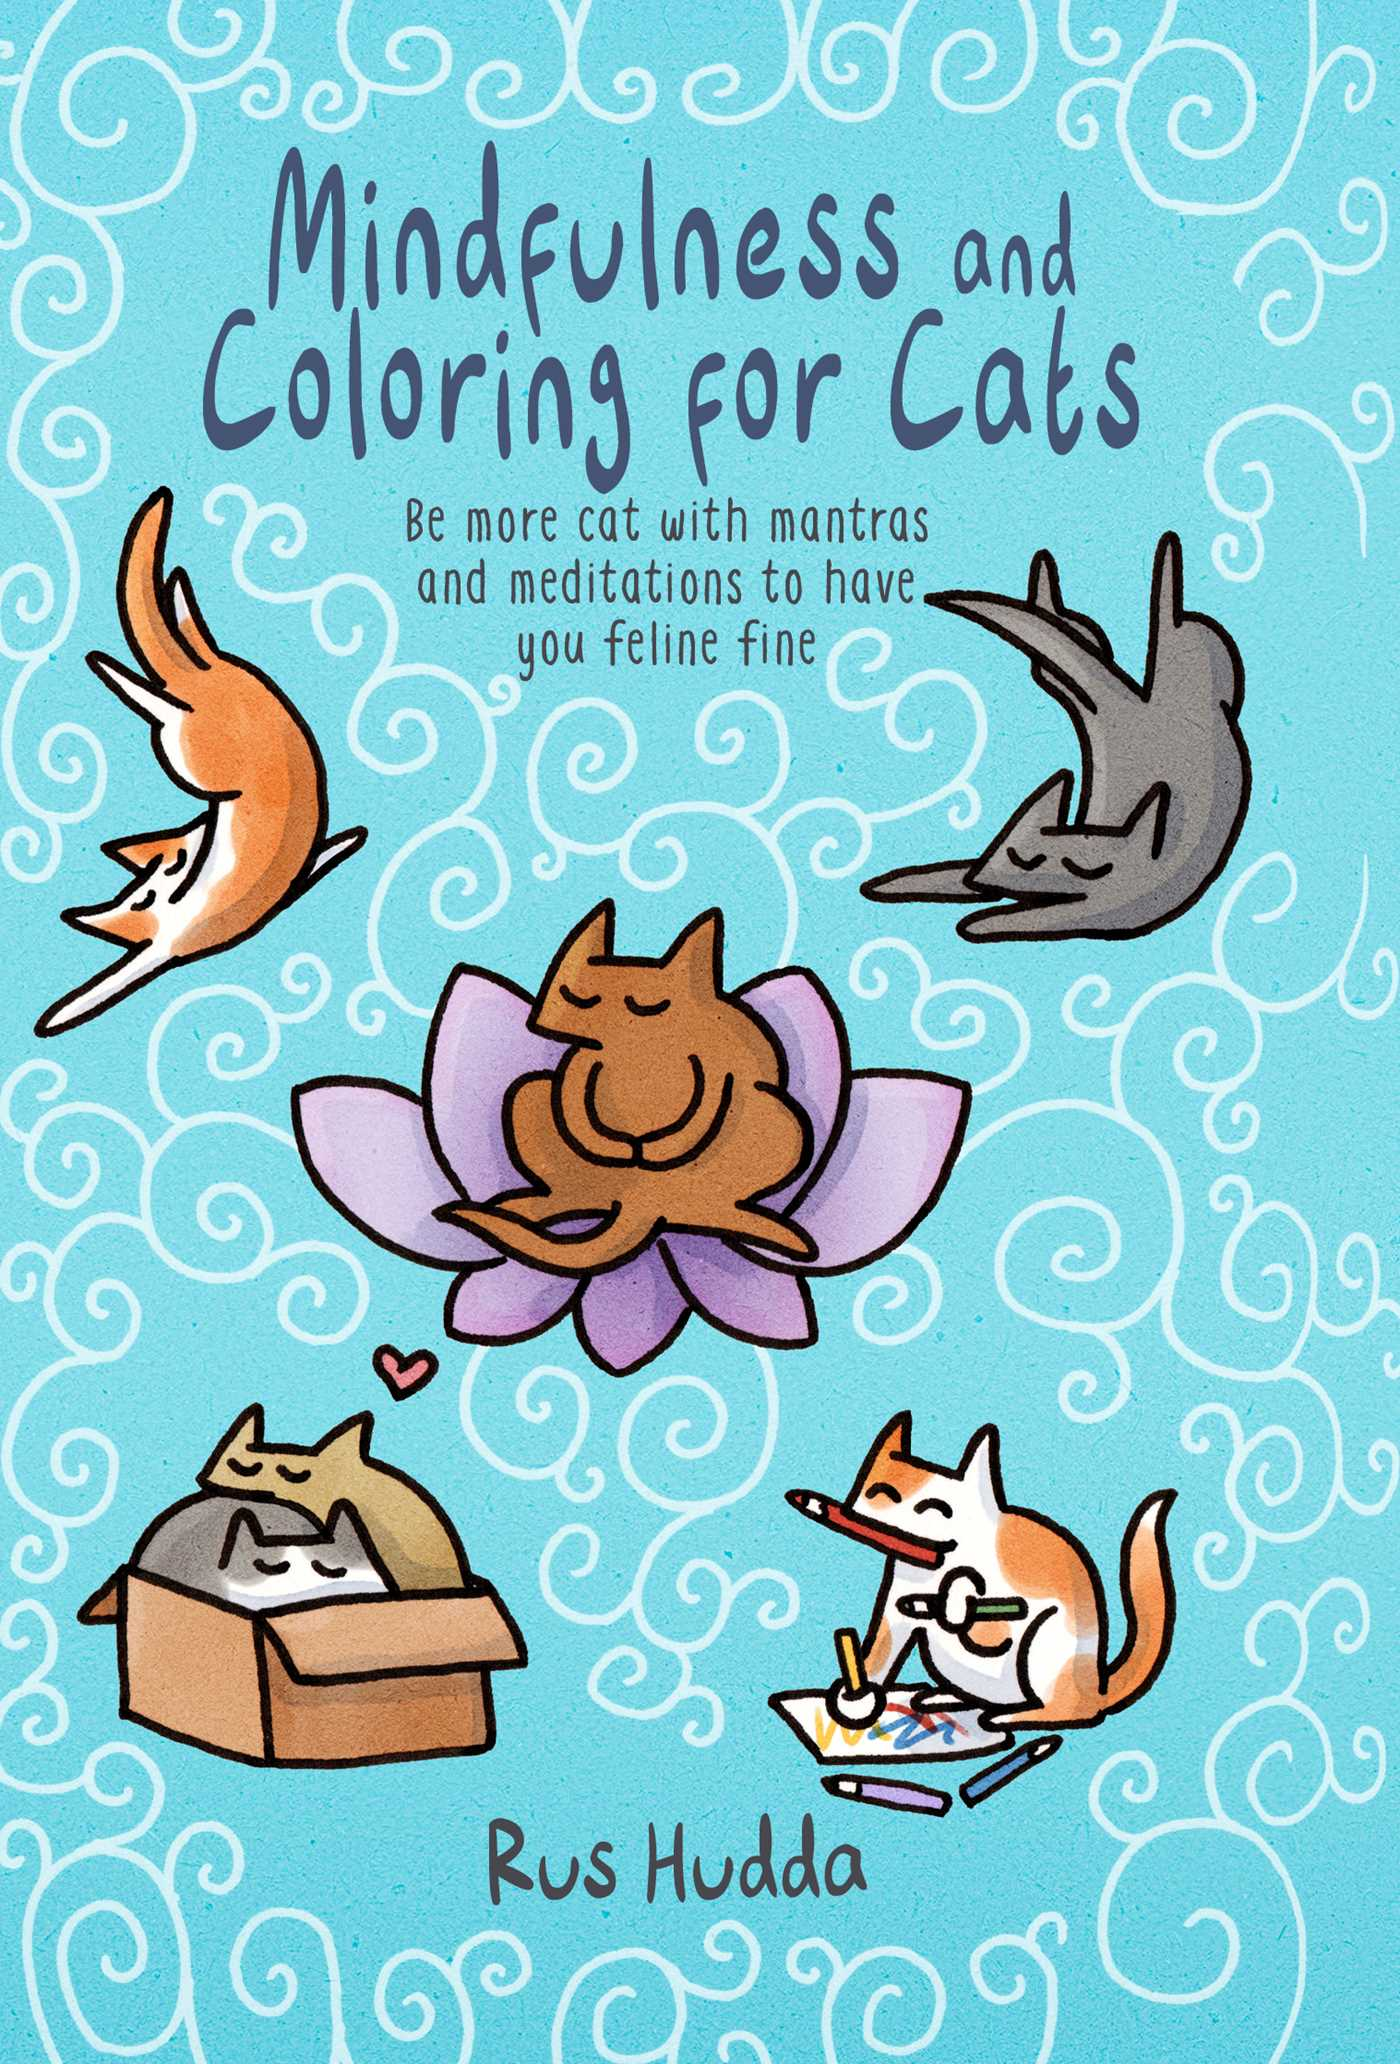 Mindfulness and coloring for cats 9781911026150 hr